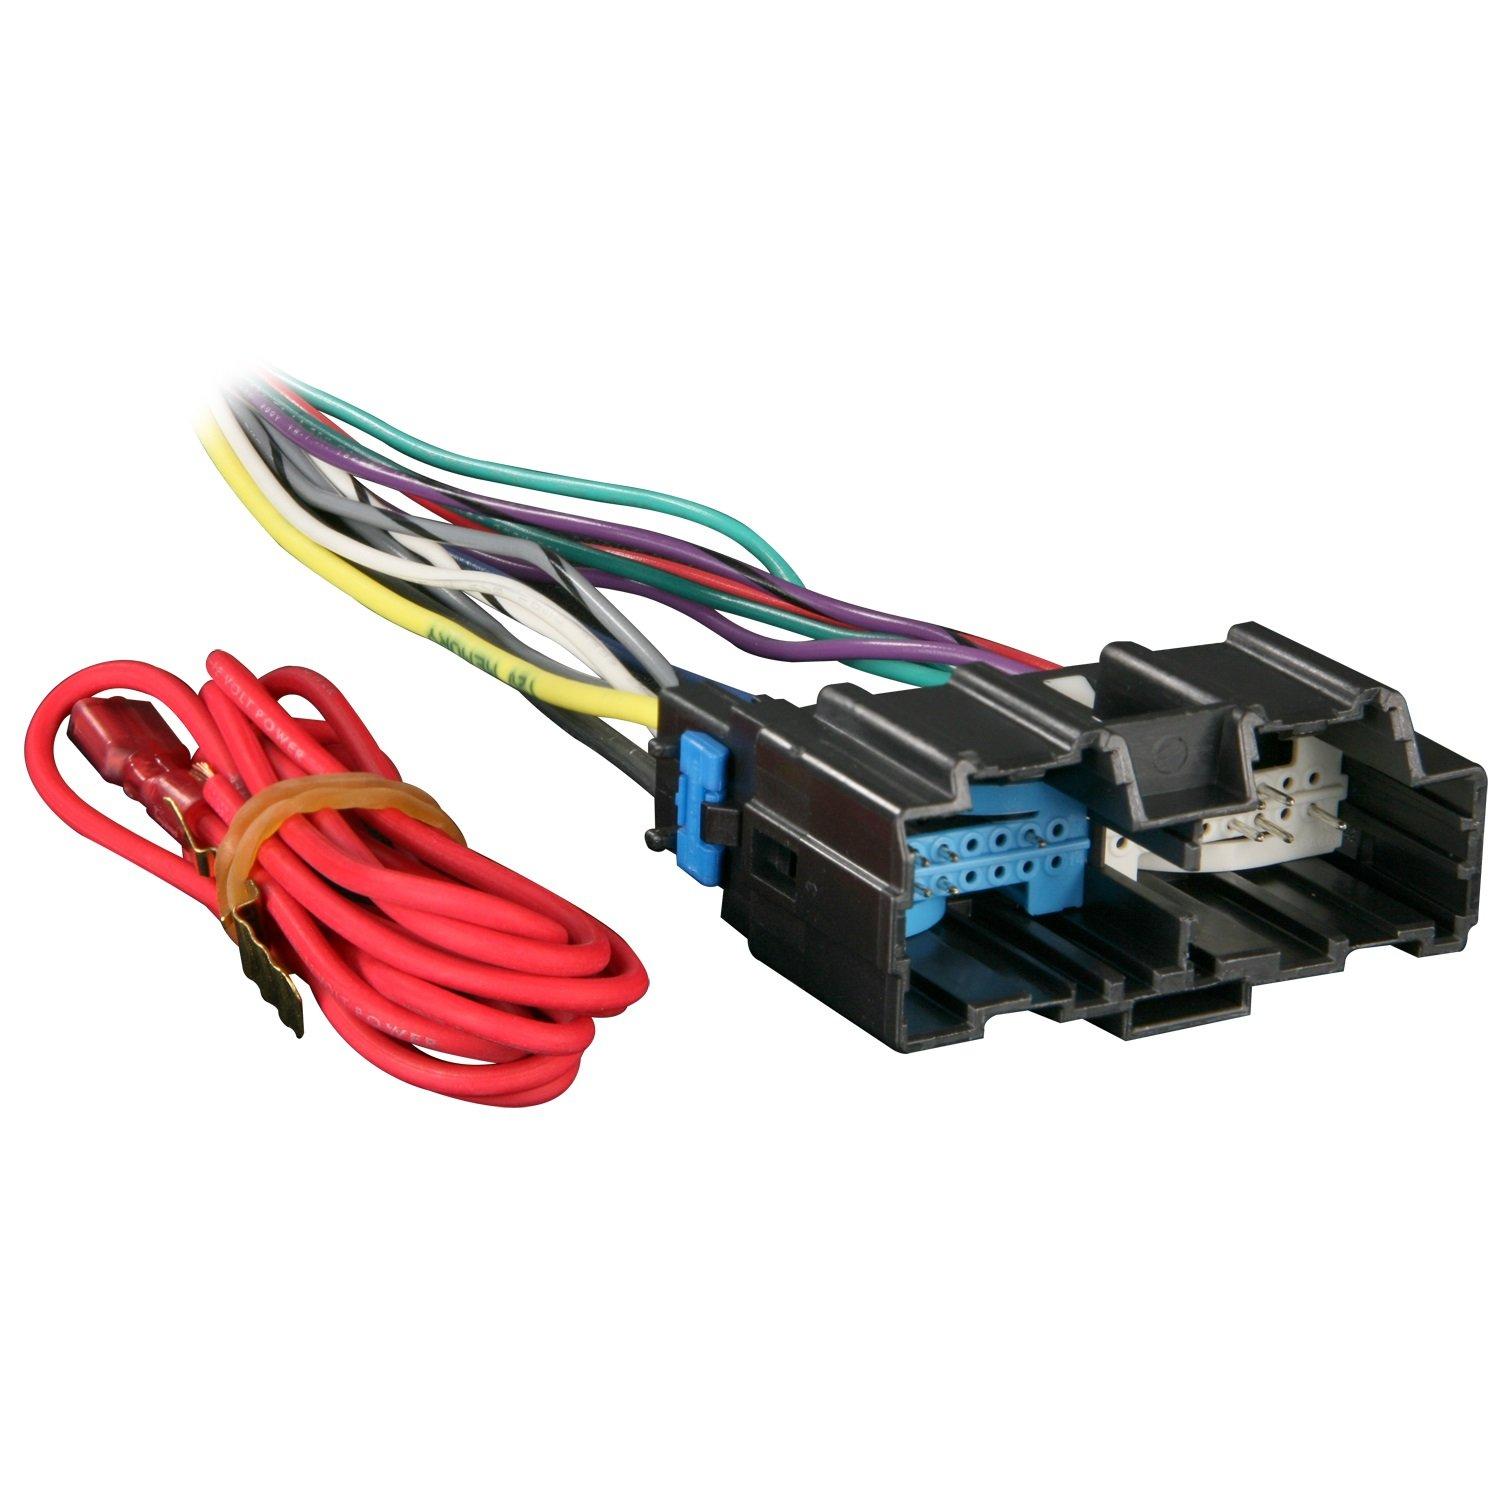 wire wiring harness for radios 2006 up pioneer 16 pin wire wiring wire  harness connector tool